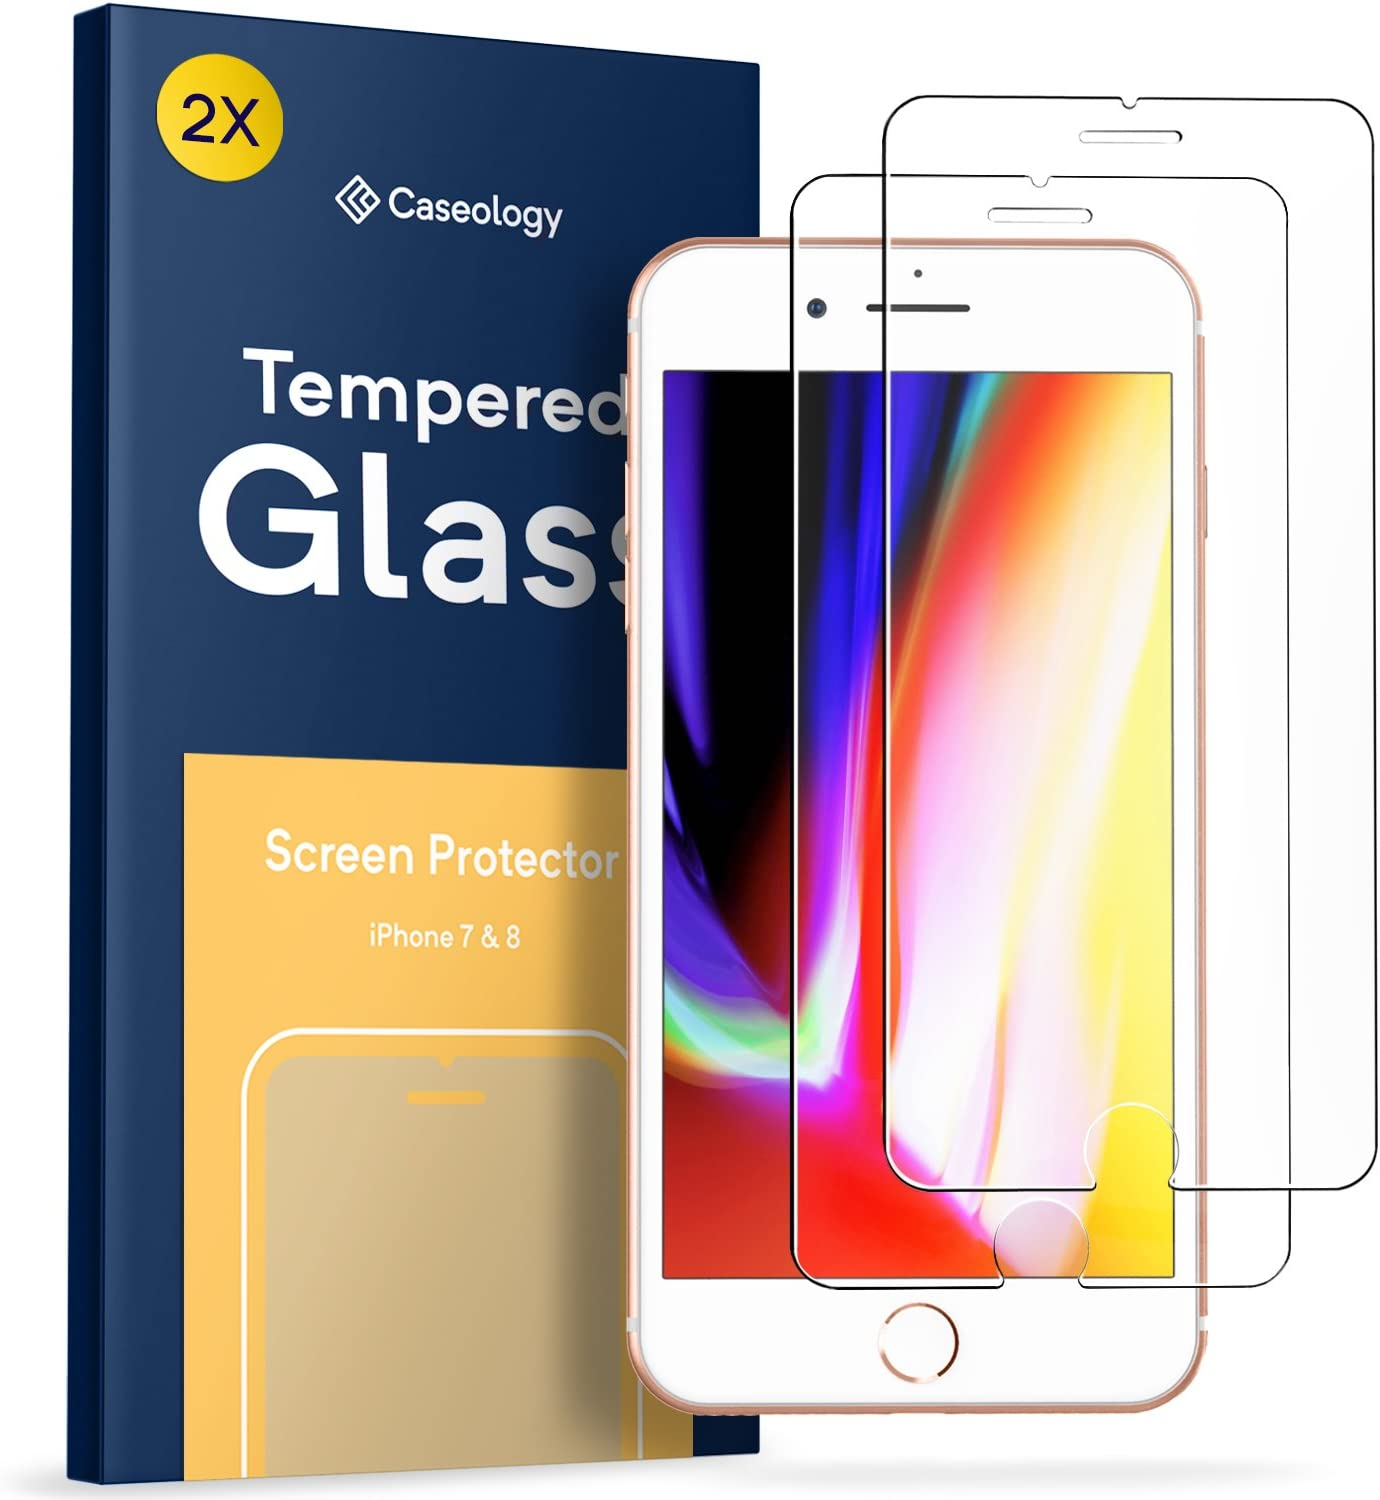 Caseology Tempered Glass for Apple iPhone 7 / 8 Screen Protector (2017) - 2 Pack